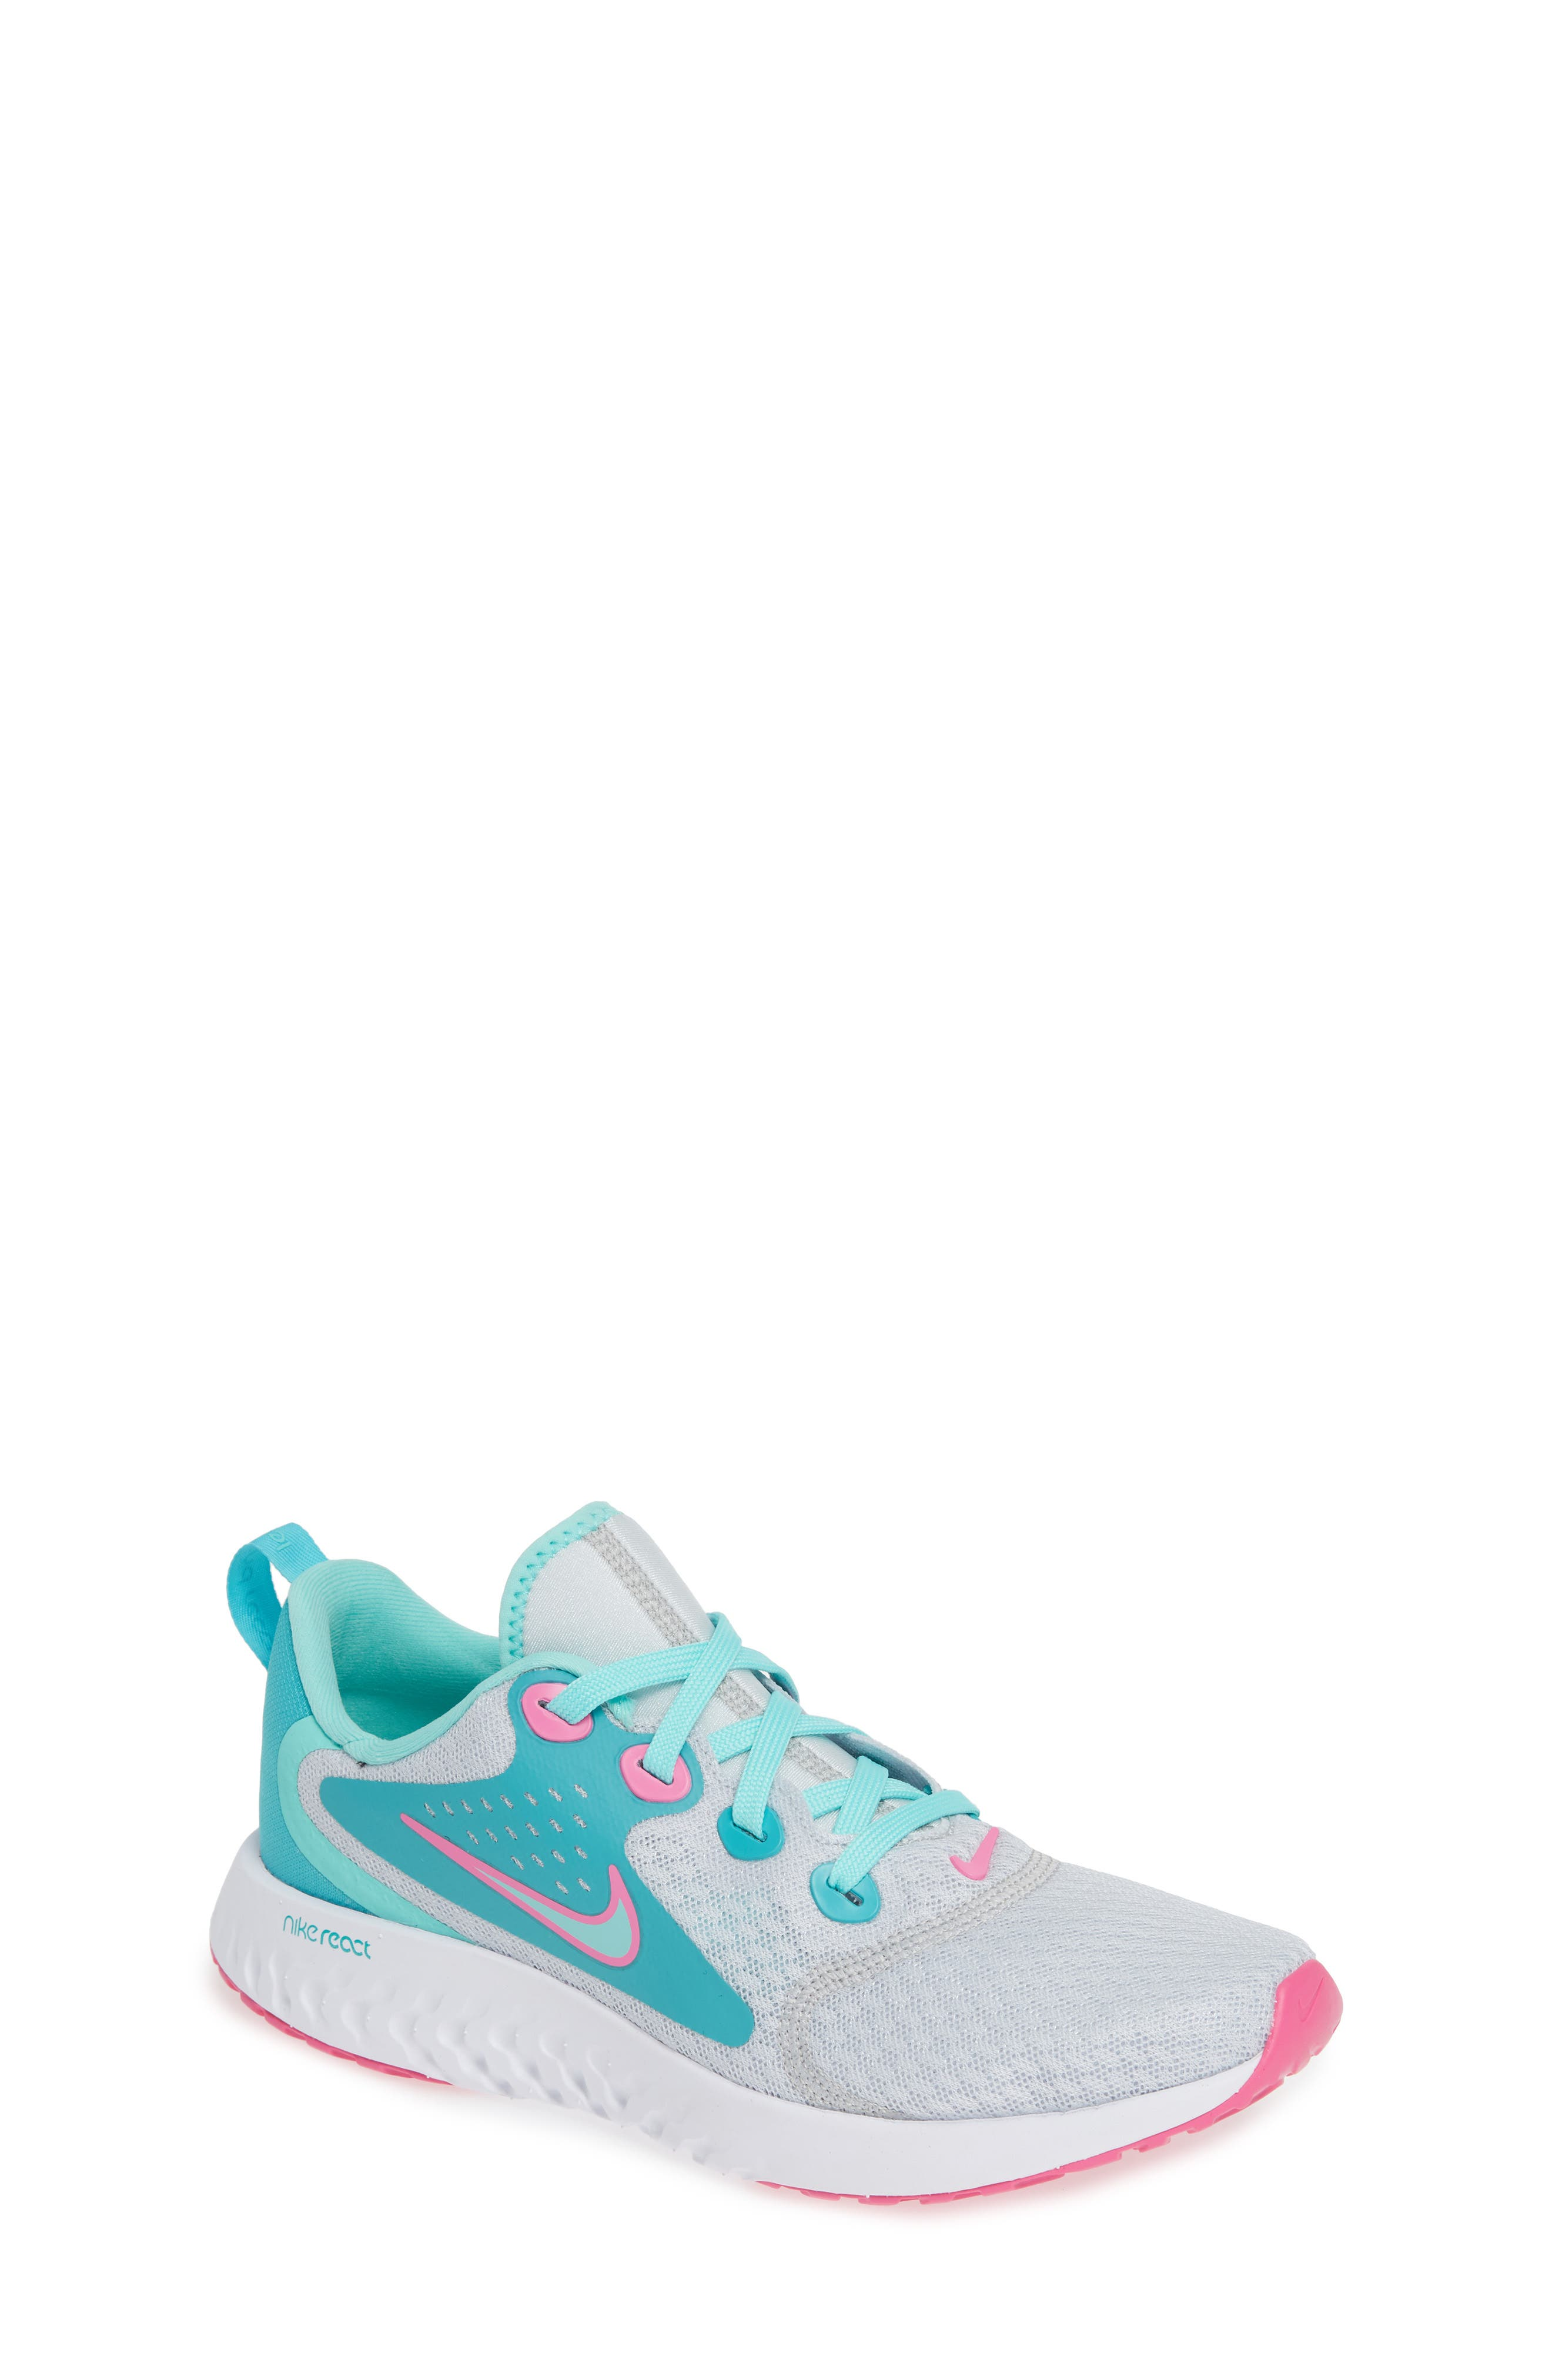 Kids Nike Legend React Aqua Running Shoe Size 45 M  Bluegreen